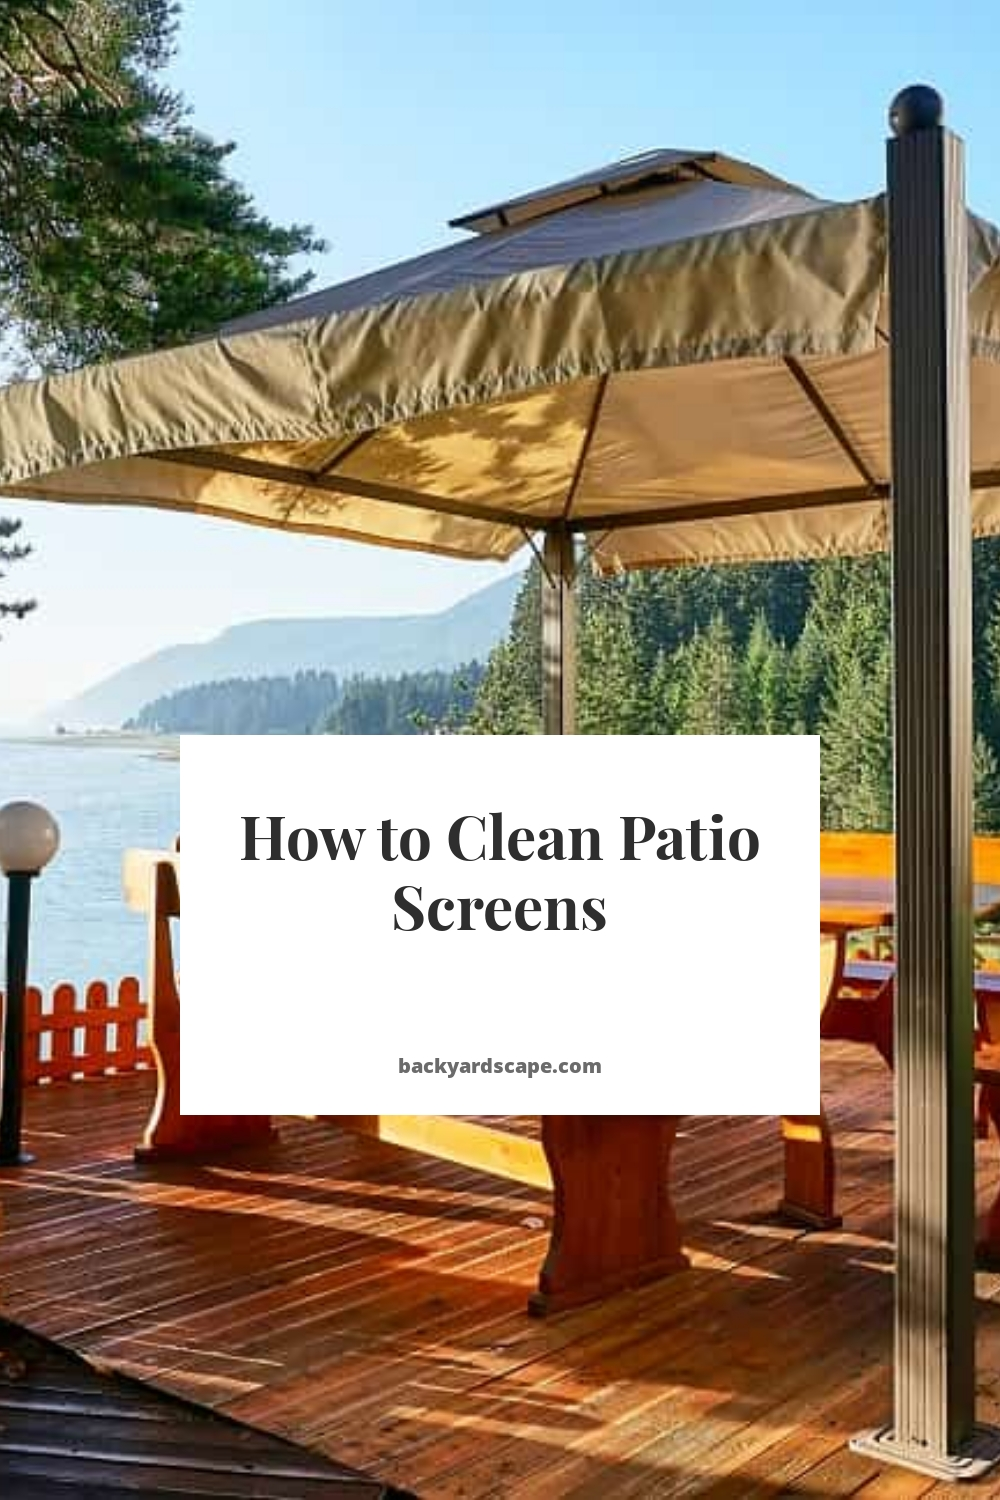 How to Clean Patio Screens